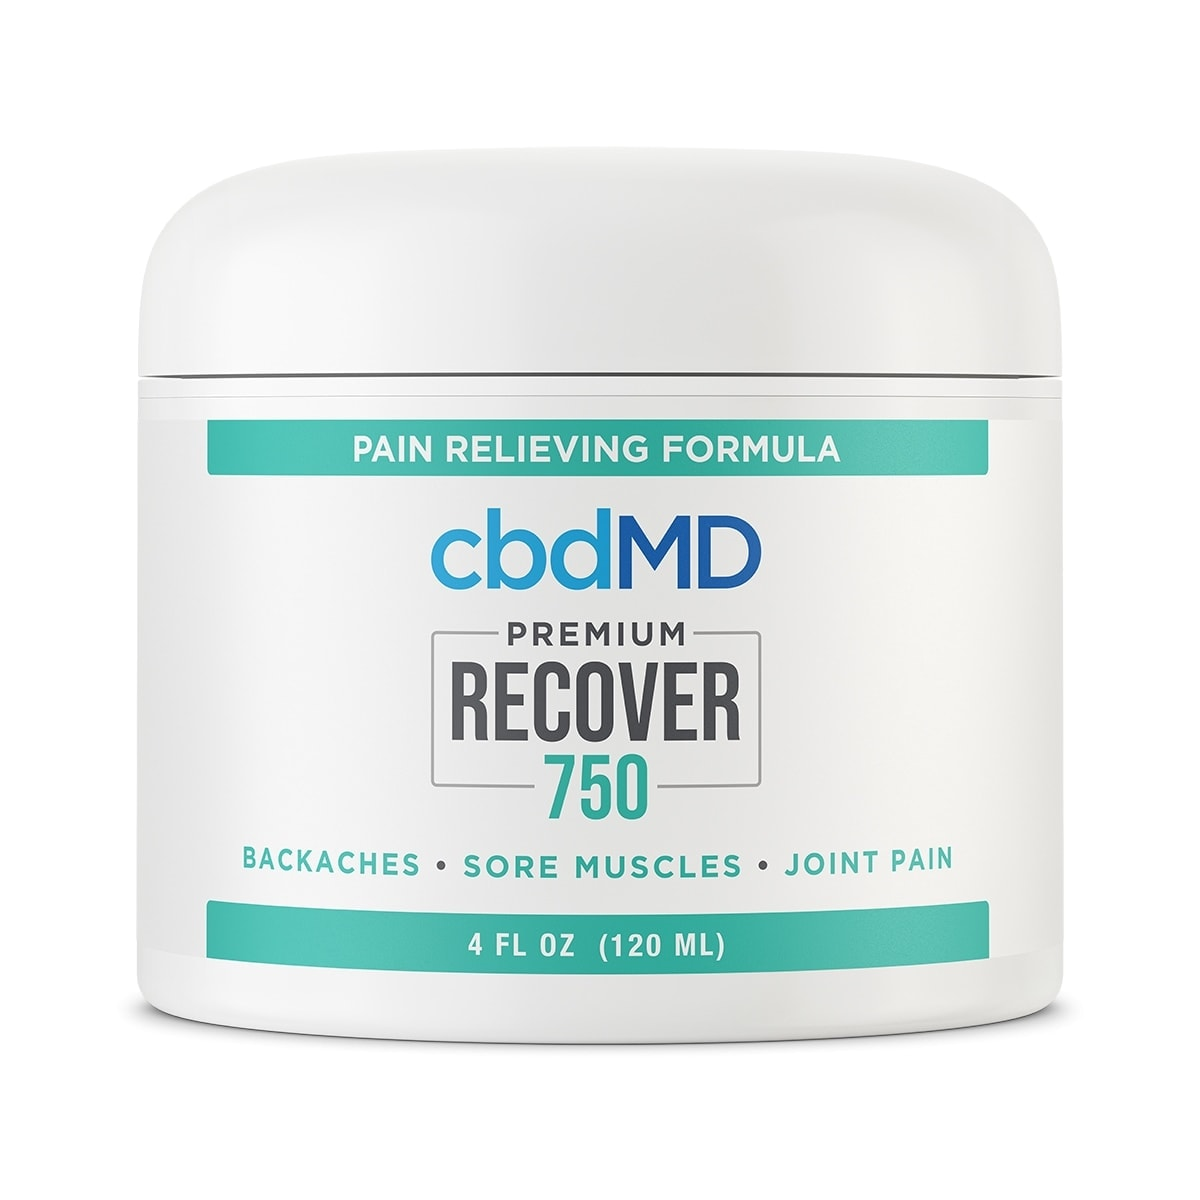 cbdMD, CCBD Recover Tub, Broad Spectrum THC-Free, 4oz, 750mg of CBD